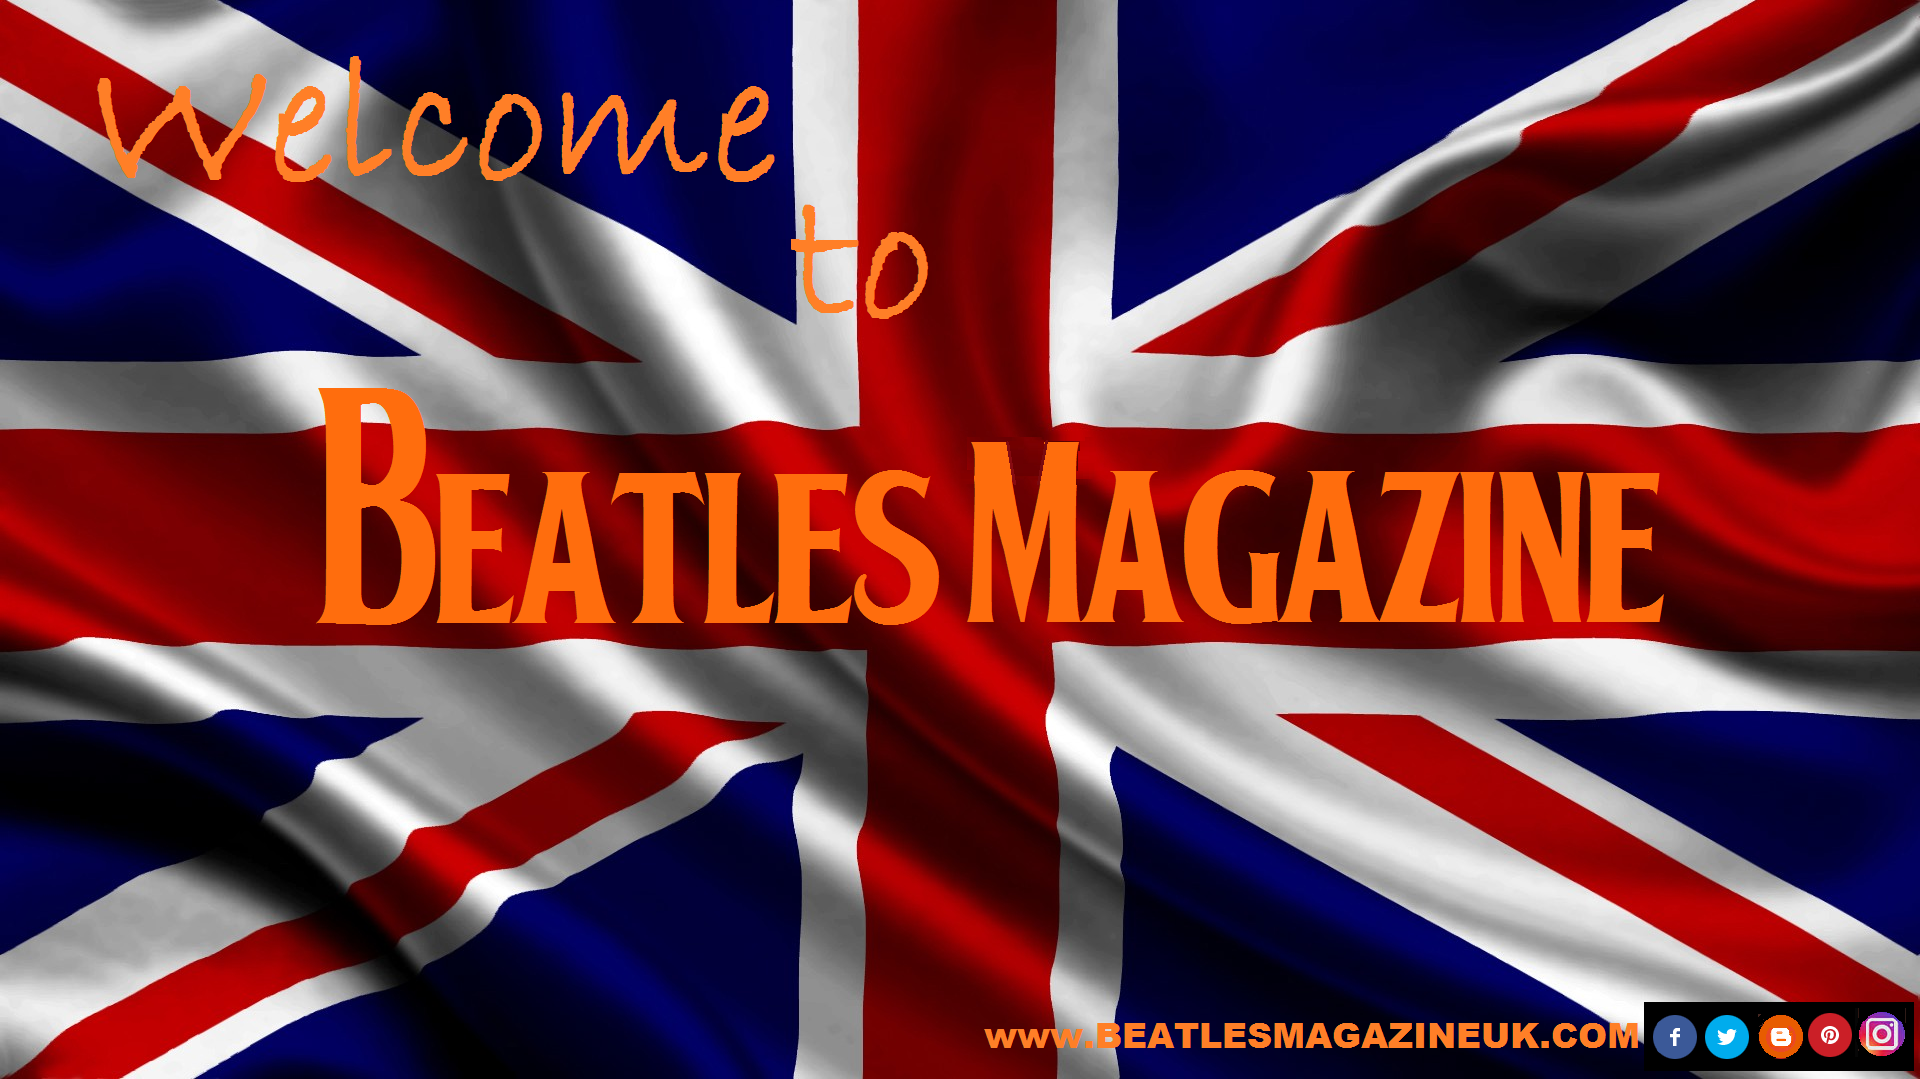 Pin by BEATLES MAGAZINE on BEATLES MAGAZINE Bbc world